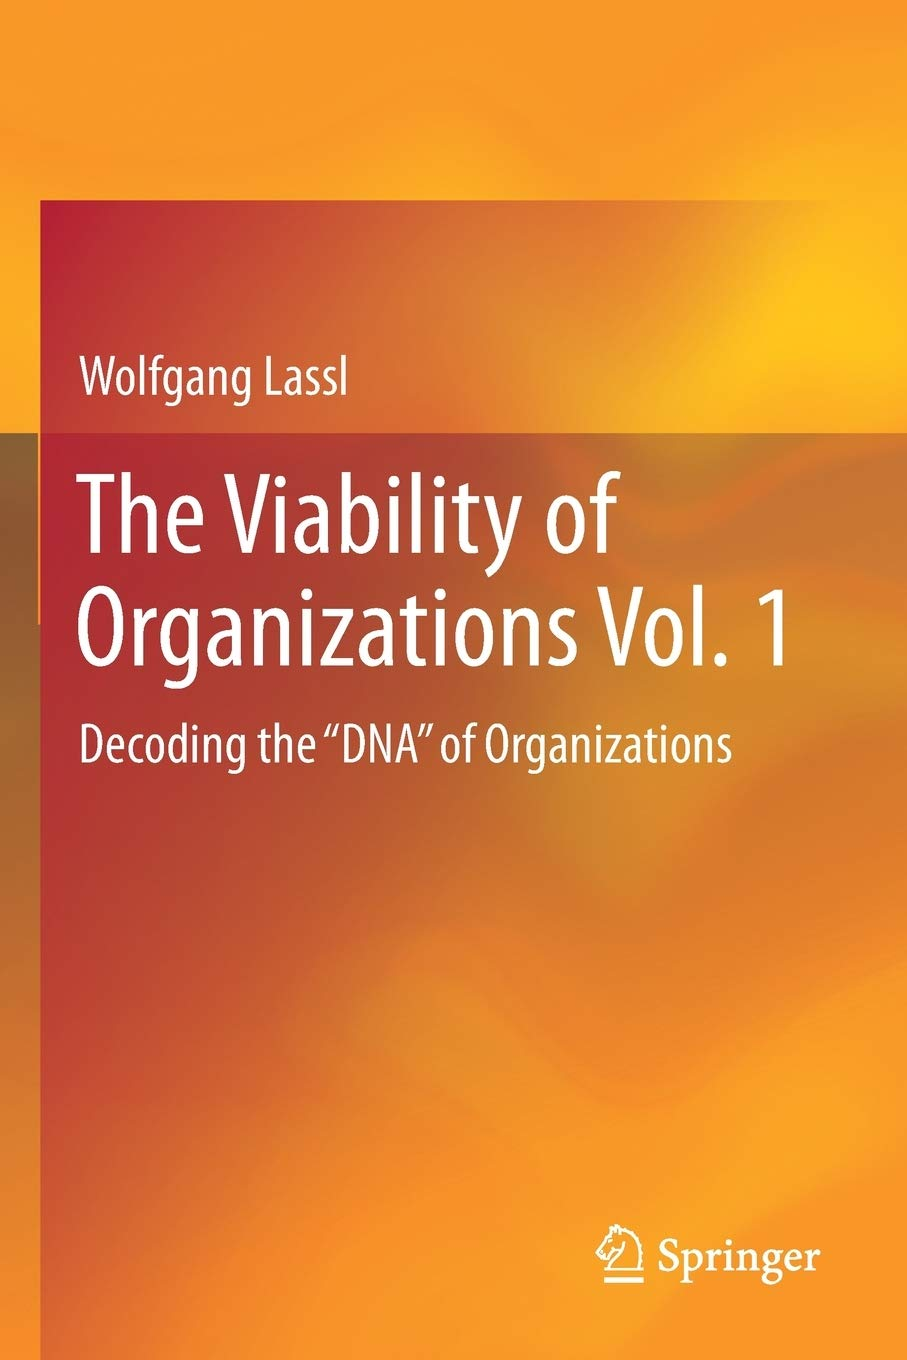 Image OfThe Viability Of Organizations Vol. 1: Decoding The